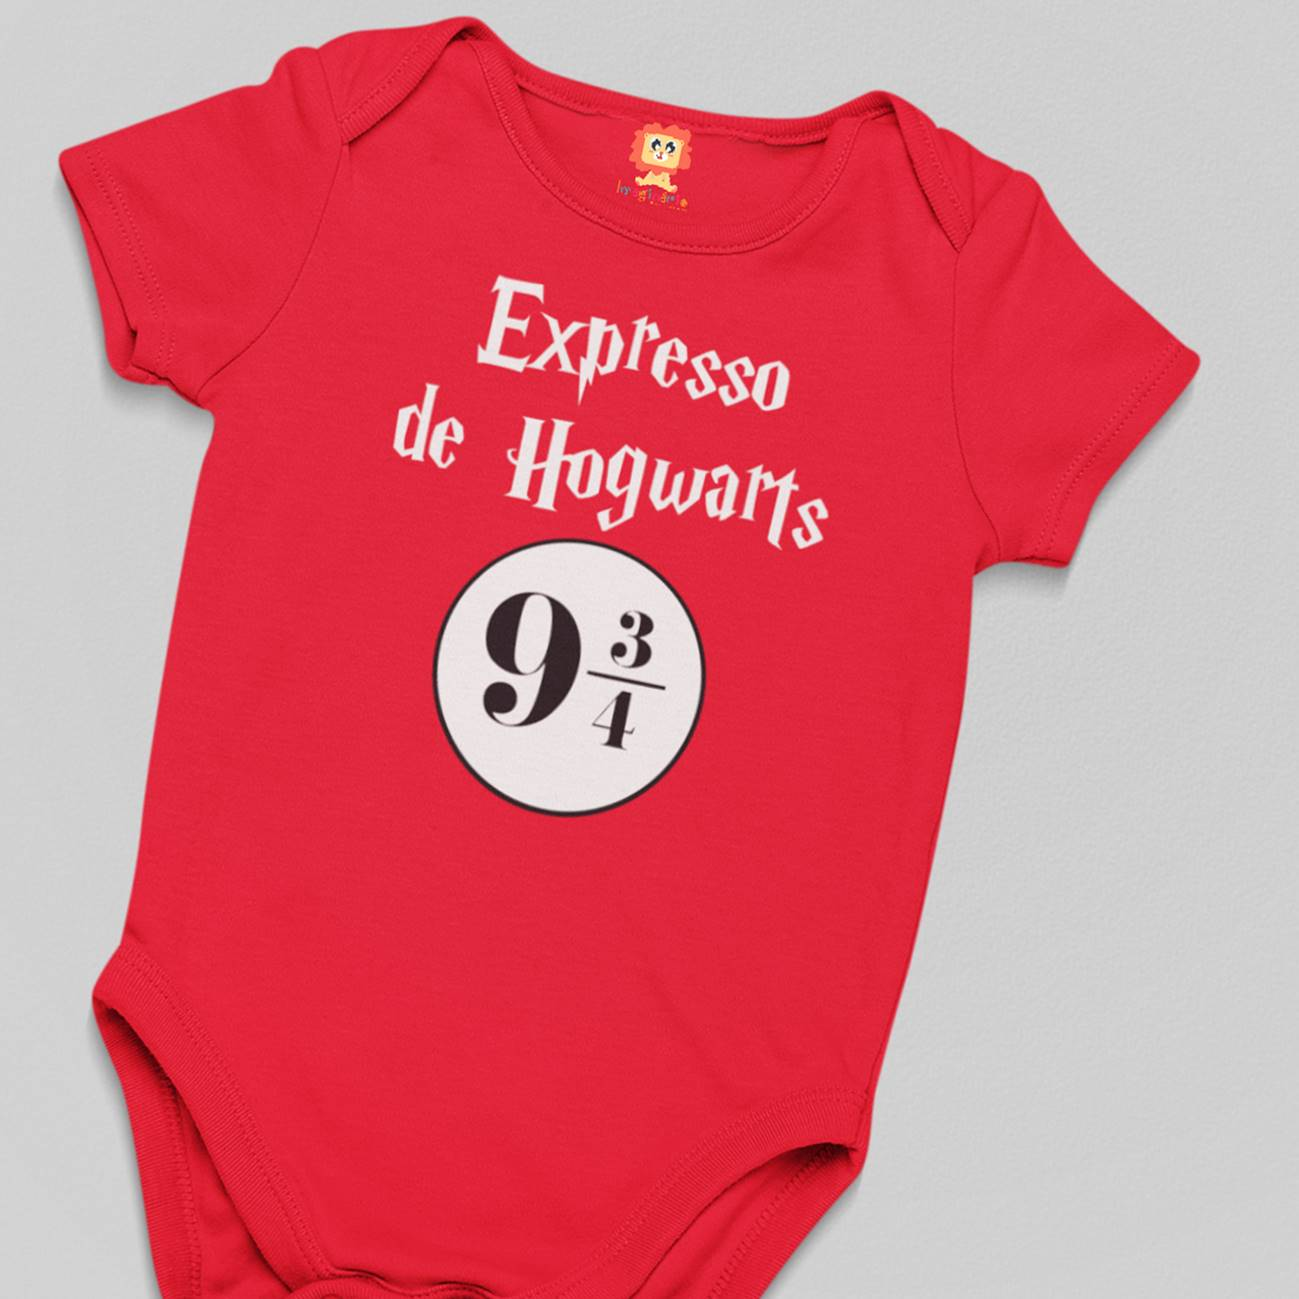 Body ou Camiseta Harry Potter Expresso Hogwarts